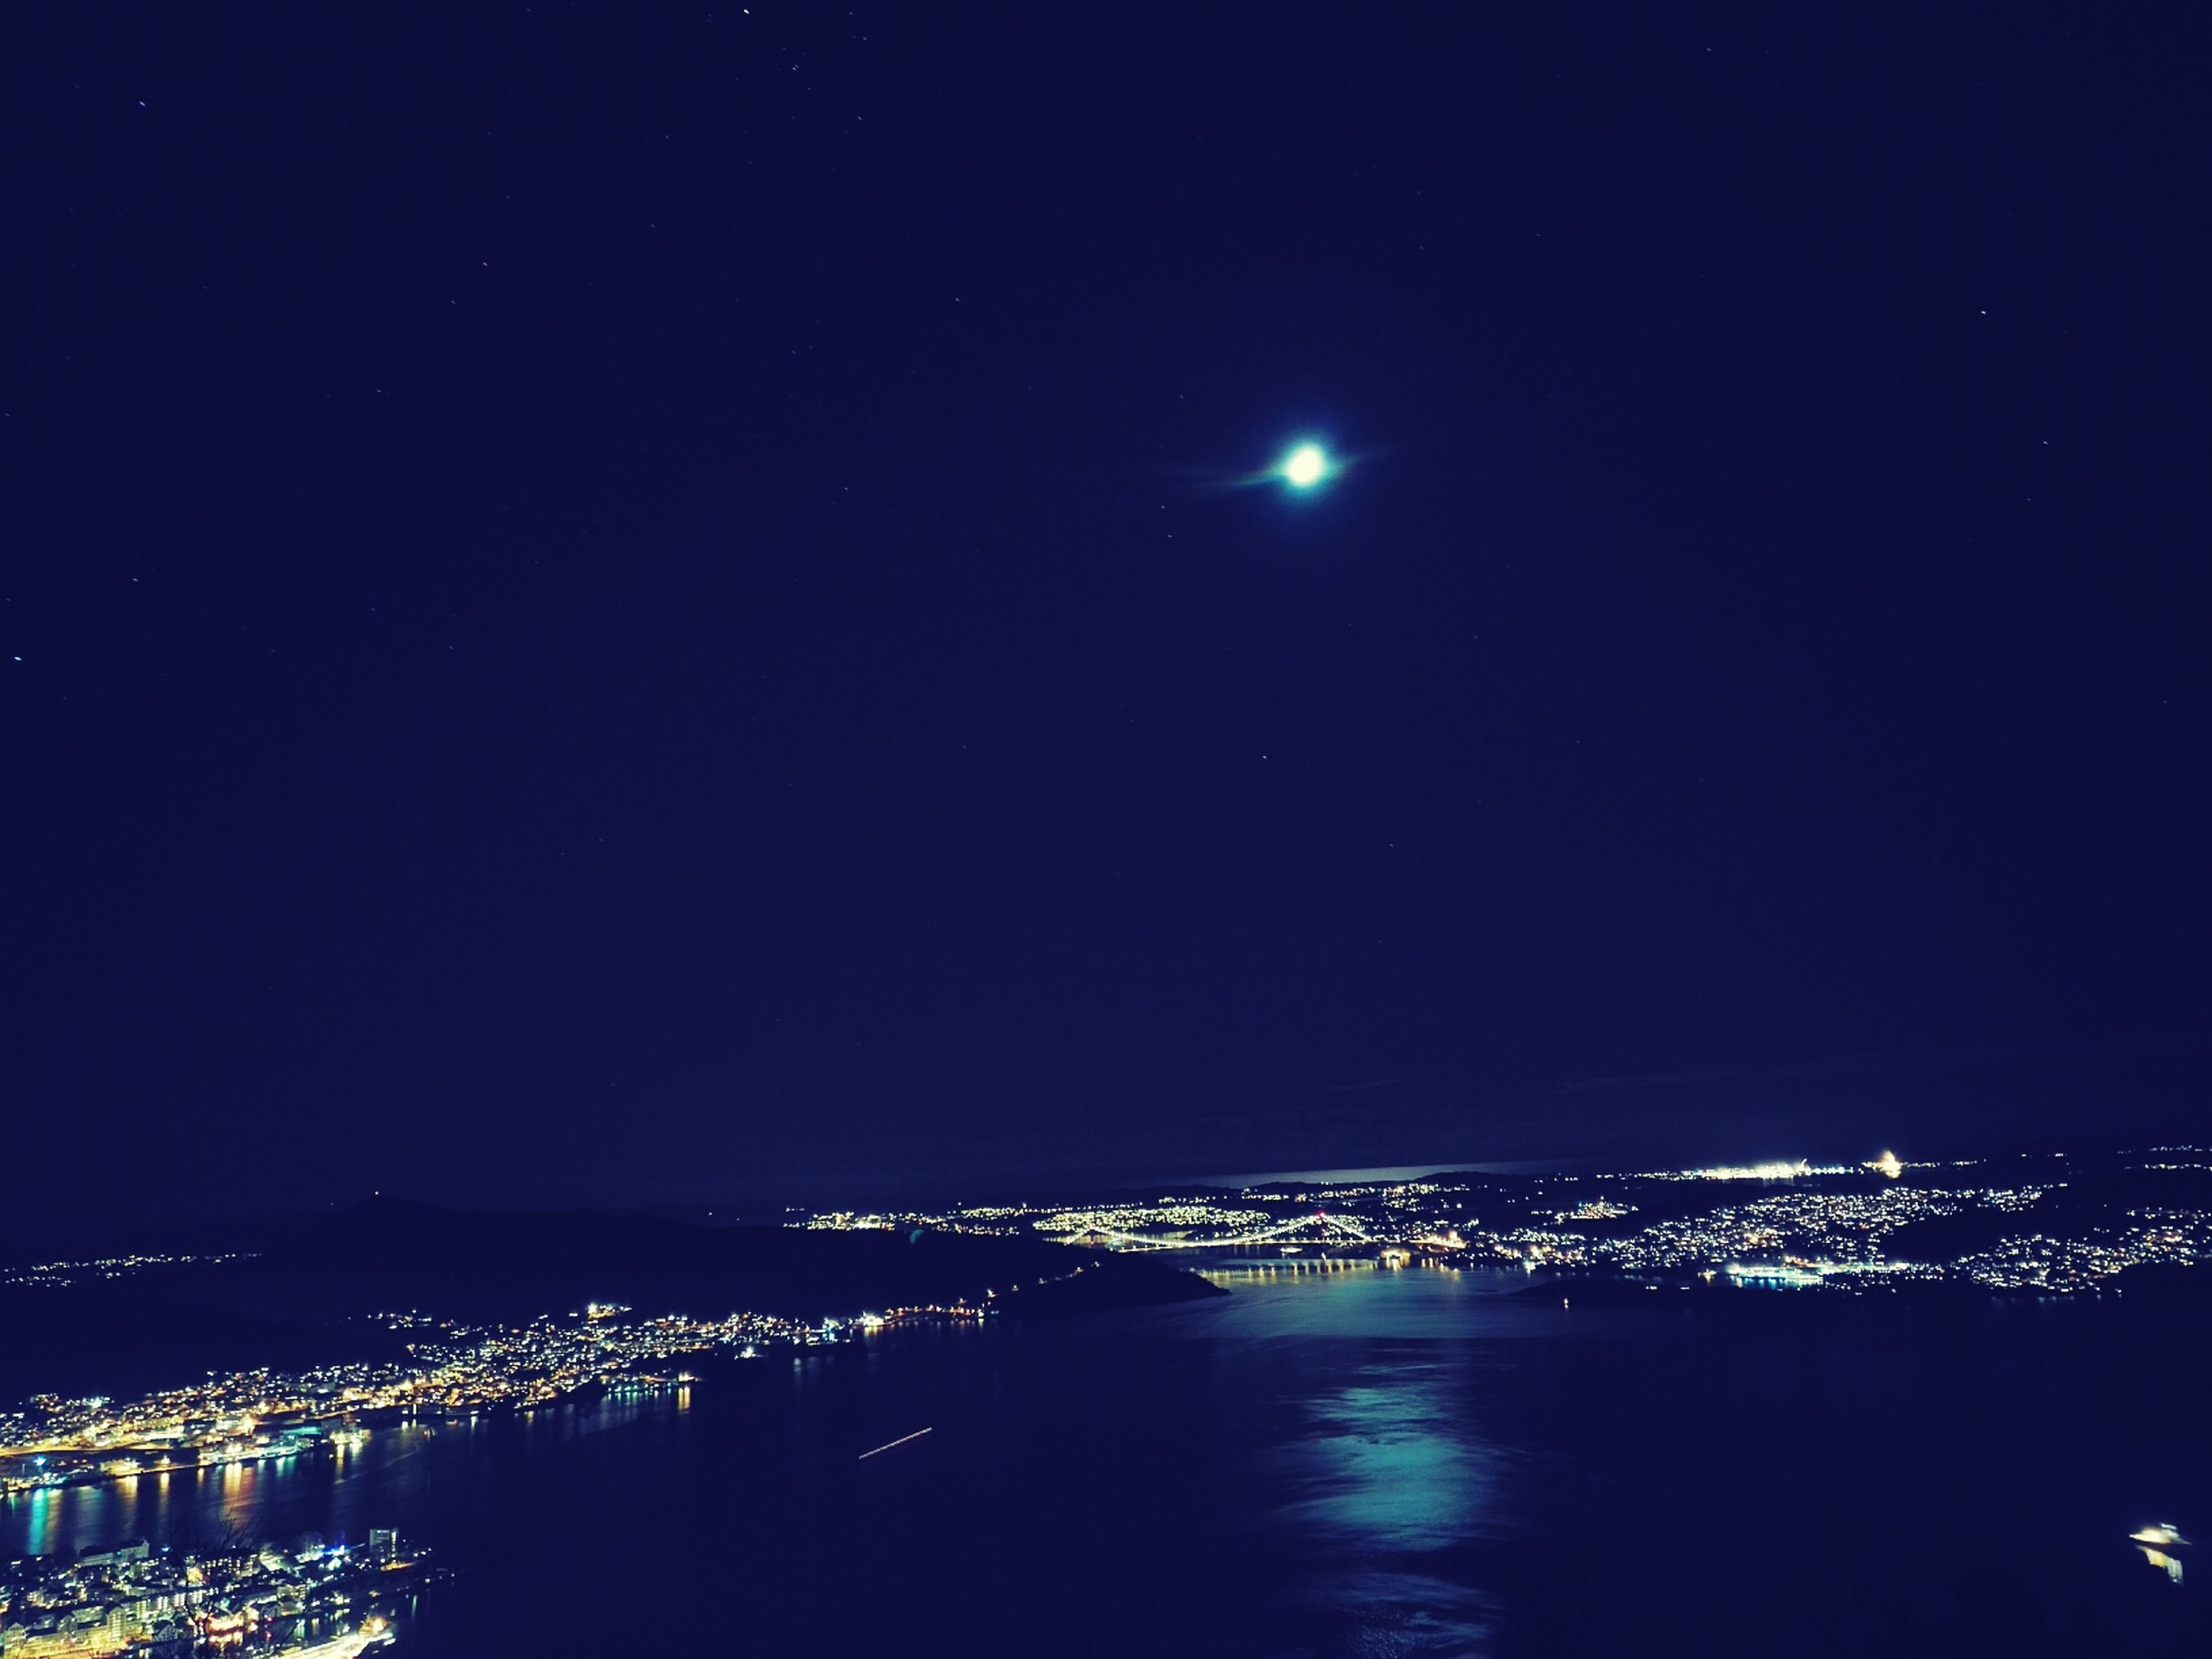 night, illuminated, cityscape, city, moon, architecture, built structure, building exterior, water, sky, sea, waterfront, river, copy space, full moon, light, clear sky, dark, scenics, outdoors